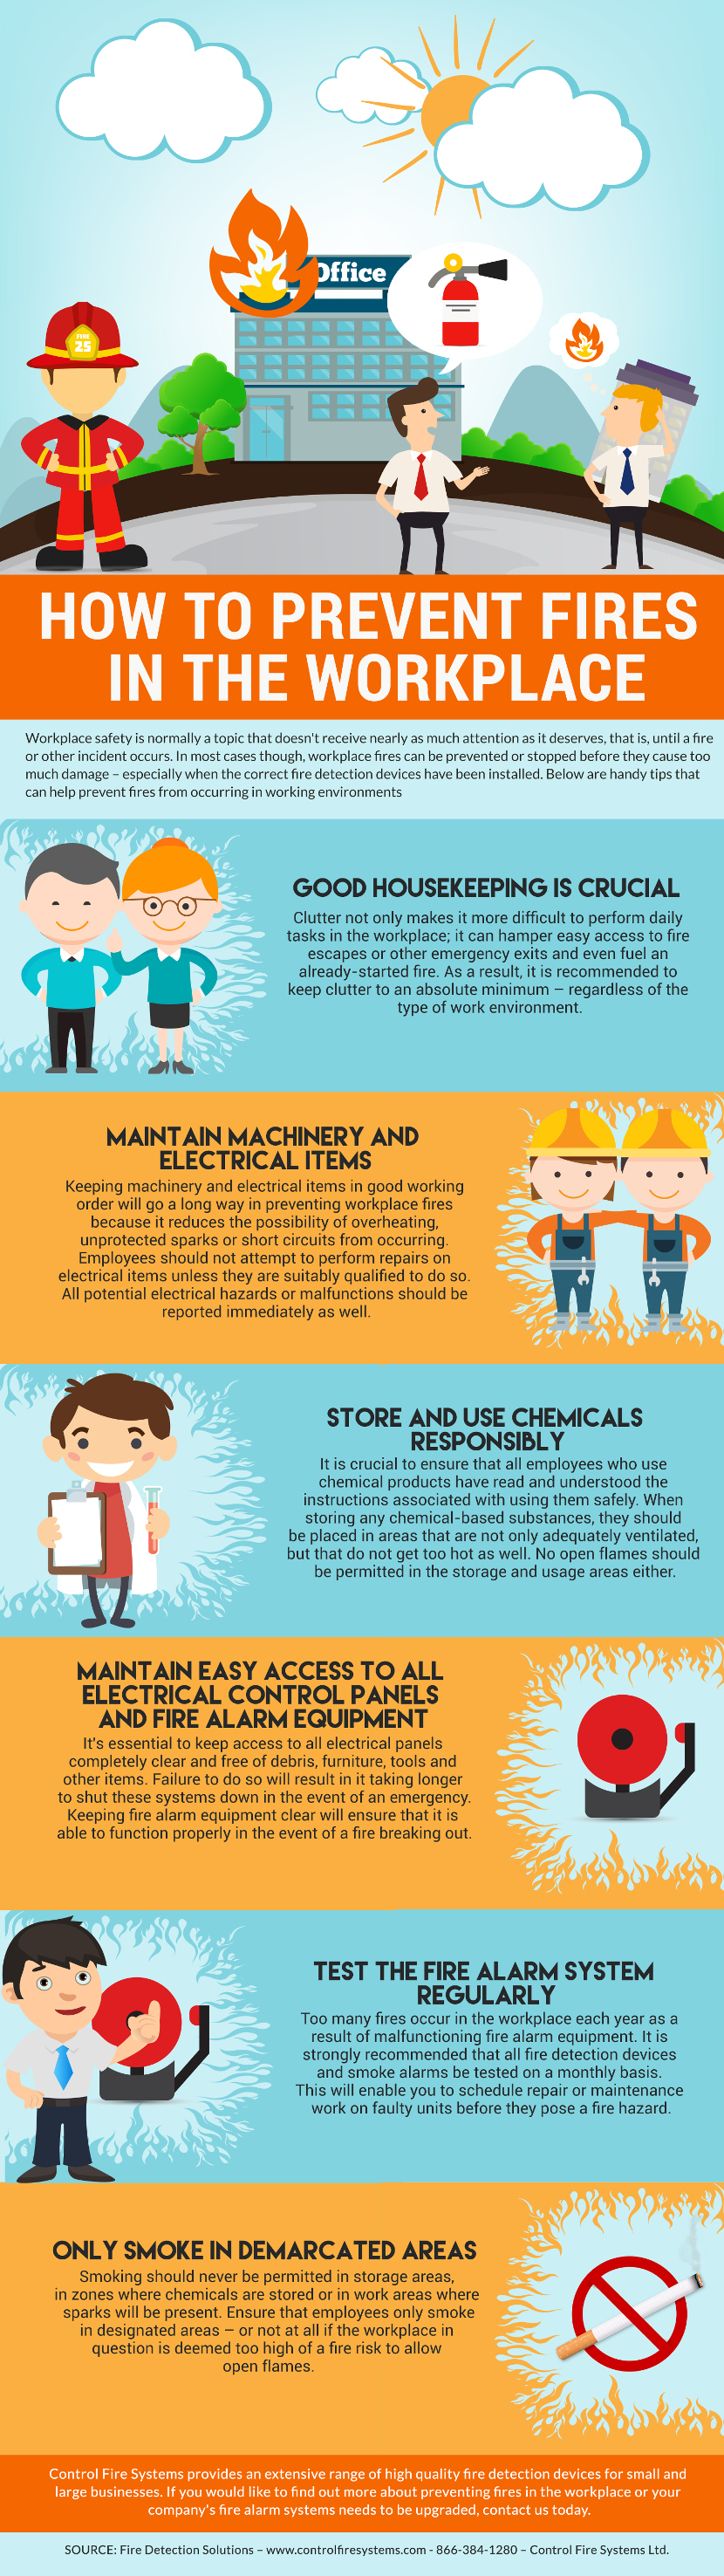 How to Prevent Fires in the Workplace | Control Fire Systems